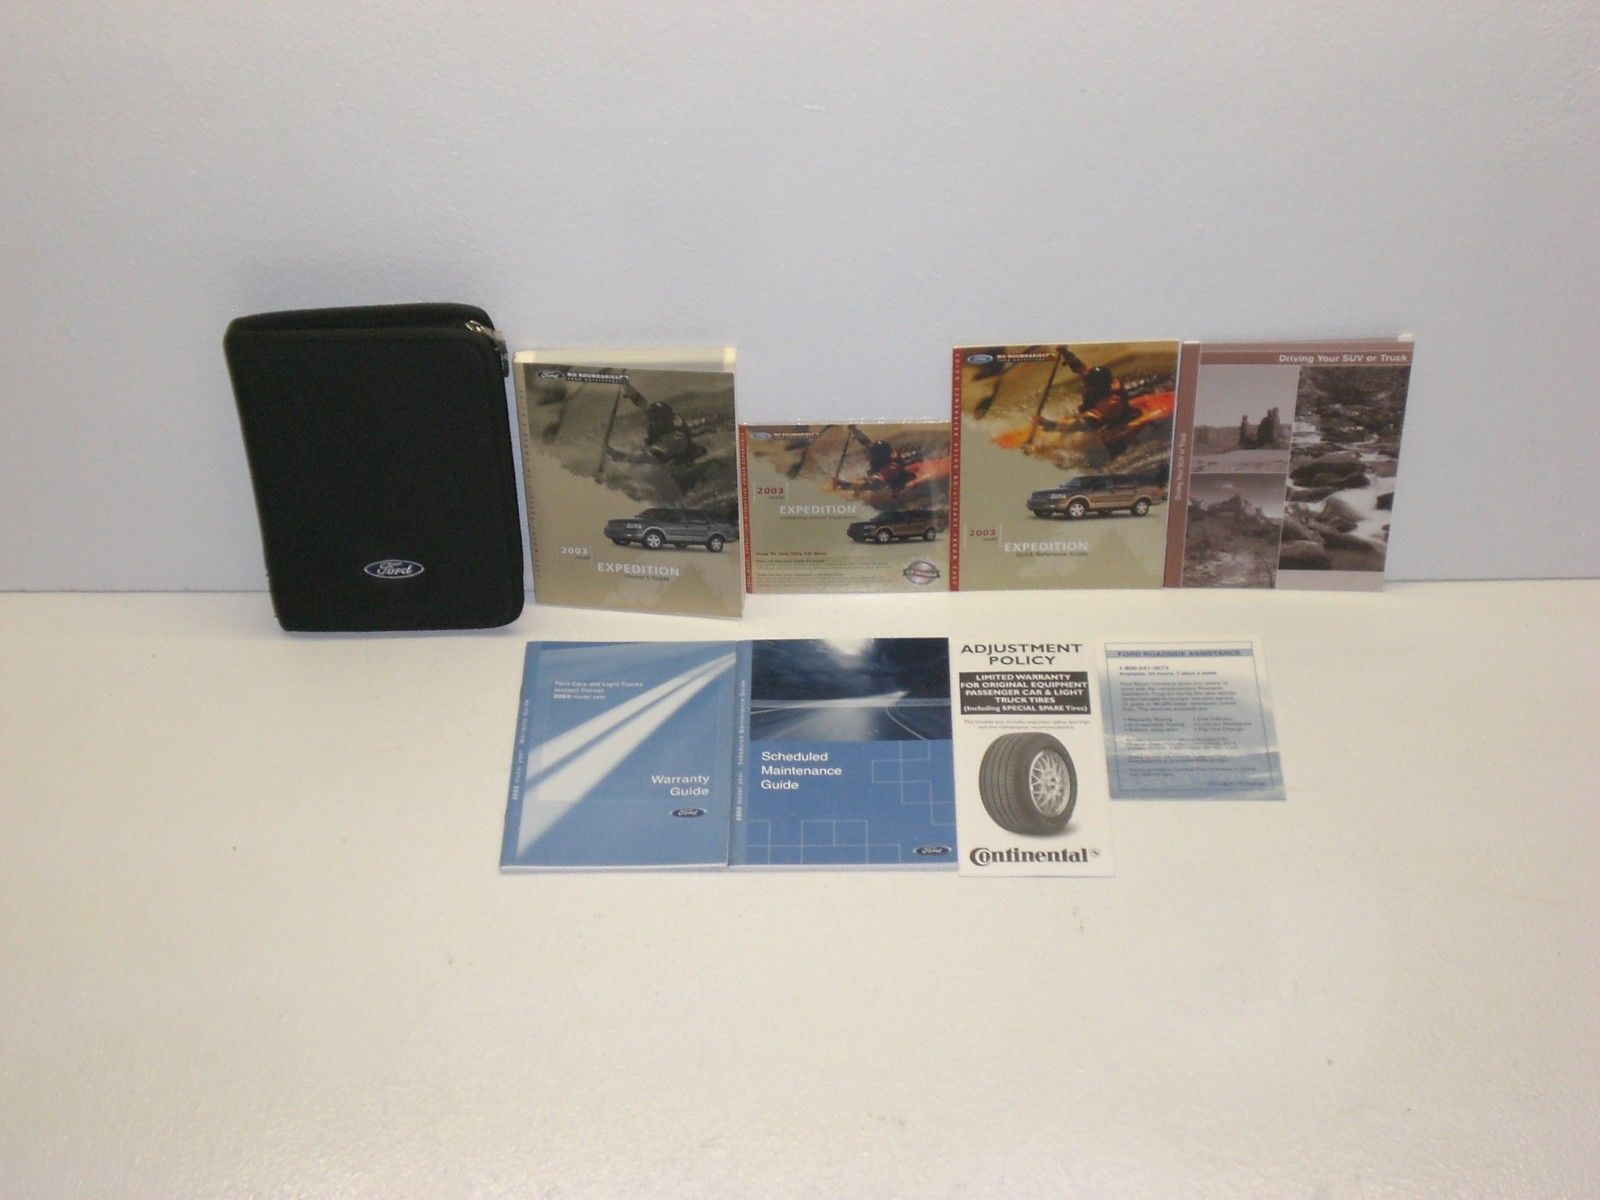 medium resolution of 2003 ford expedition owners manual set w cd ebay link